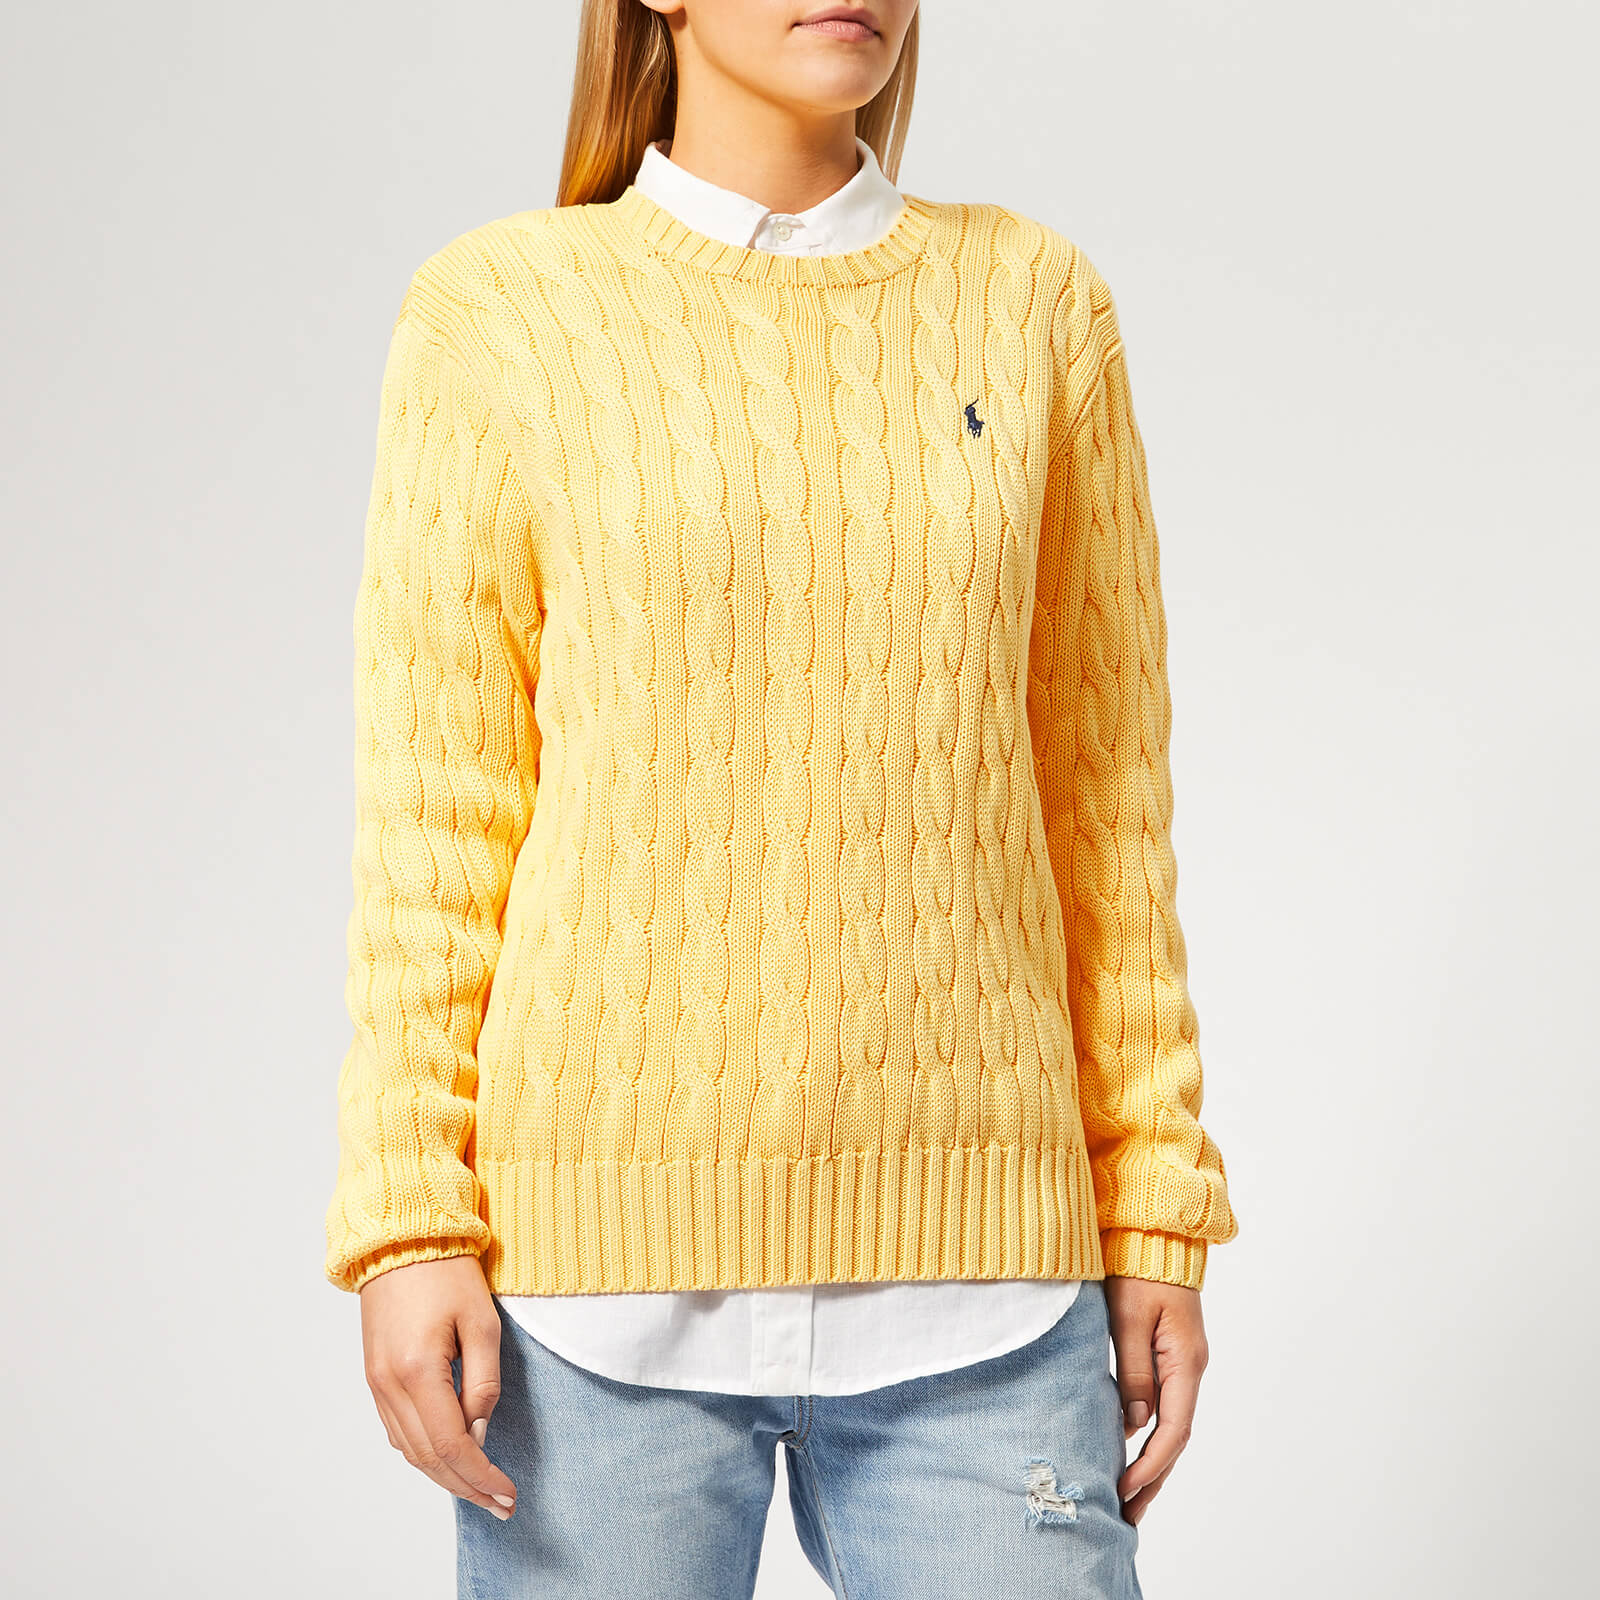 d4042d247416 Polo Ralph Lauren Women's Cable Knit Sweater - Buttercream - Free UK  Delivery over £50